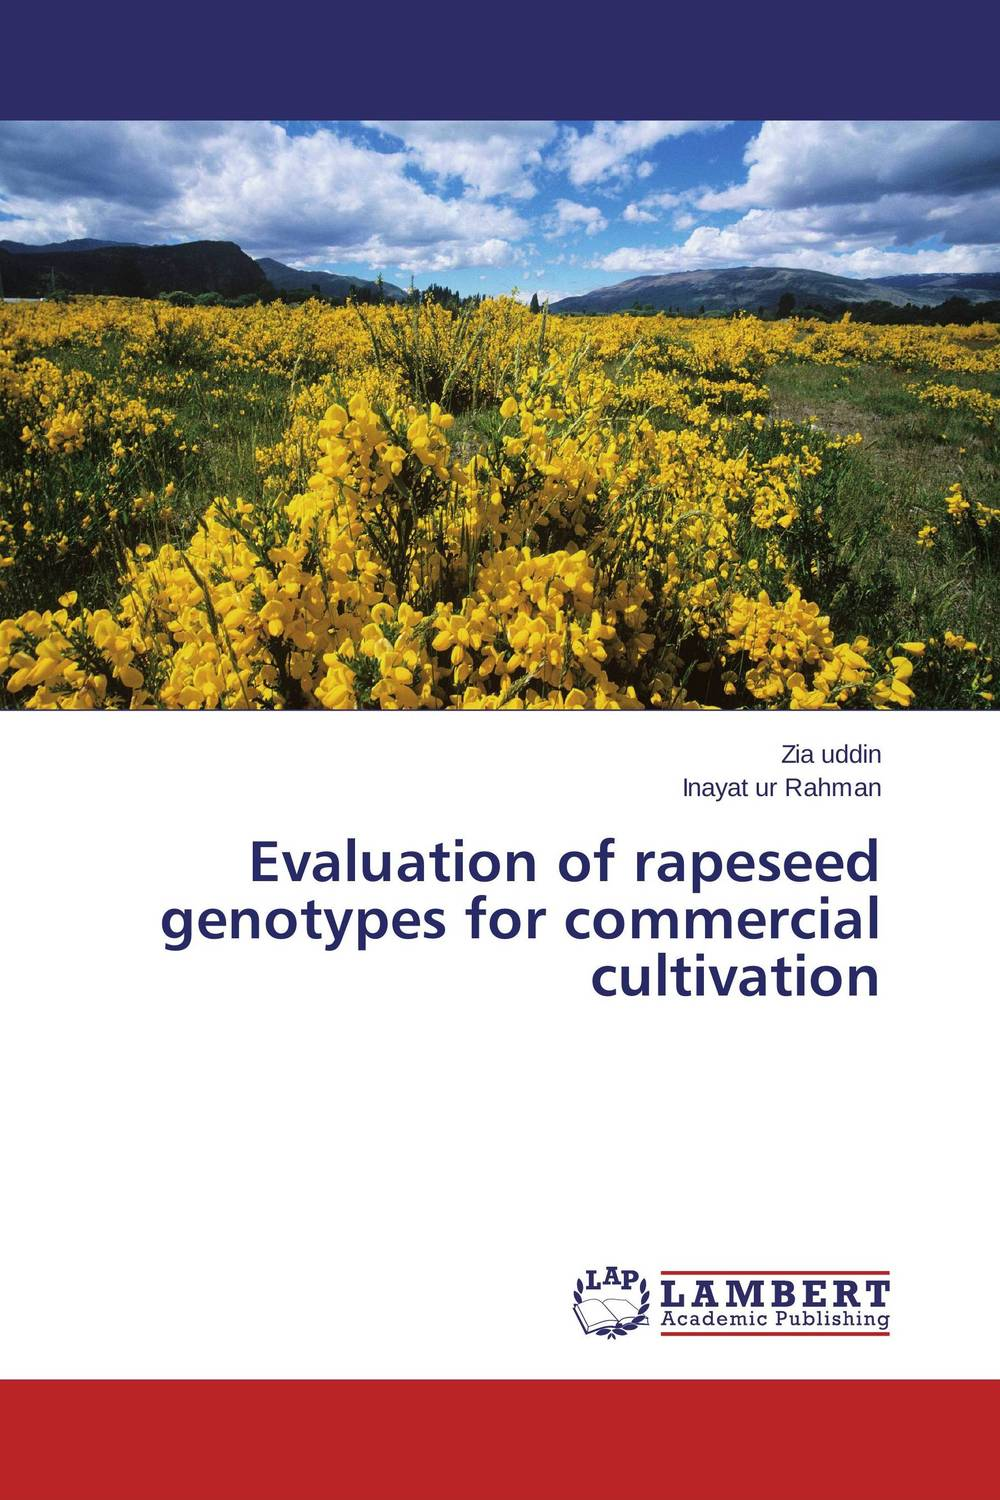 Evaluation of rapeseed genotypes for commercial cultivation